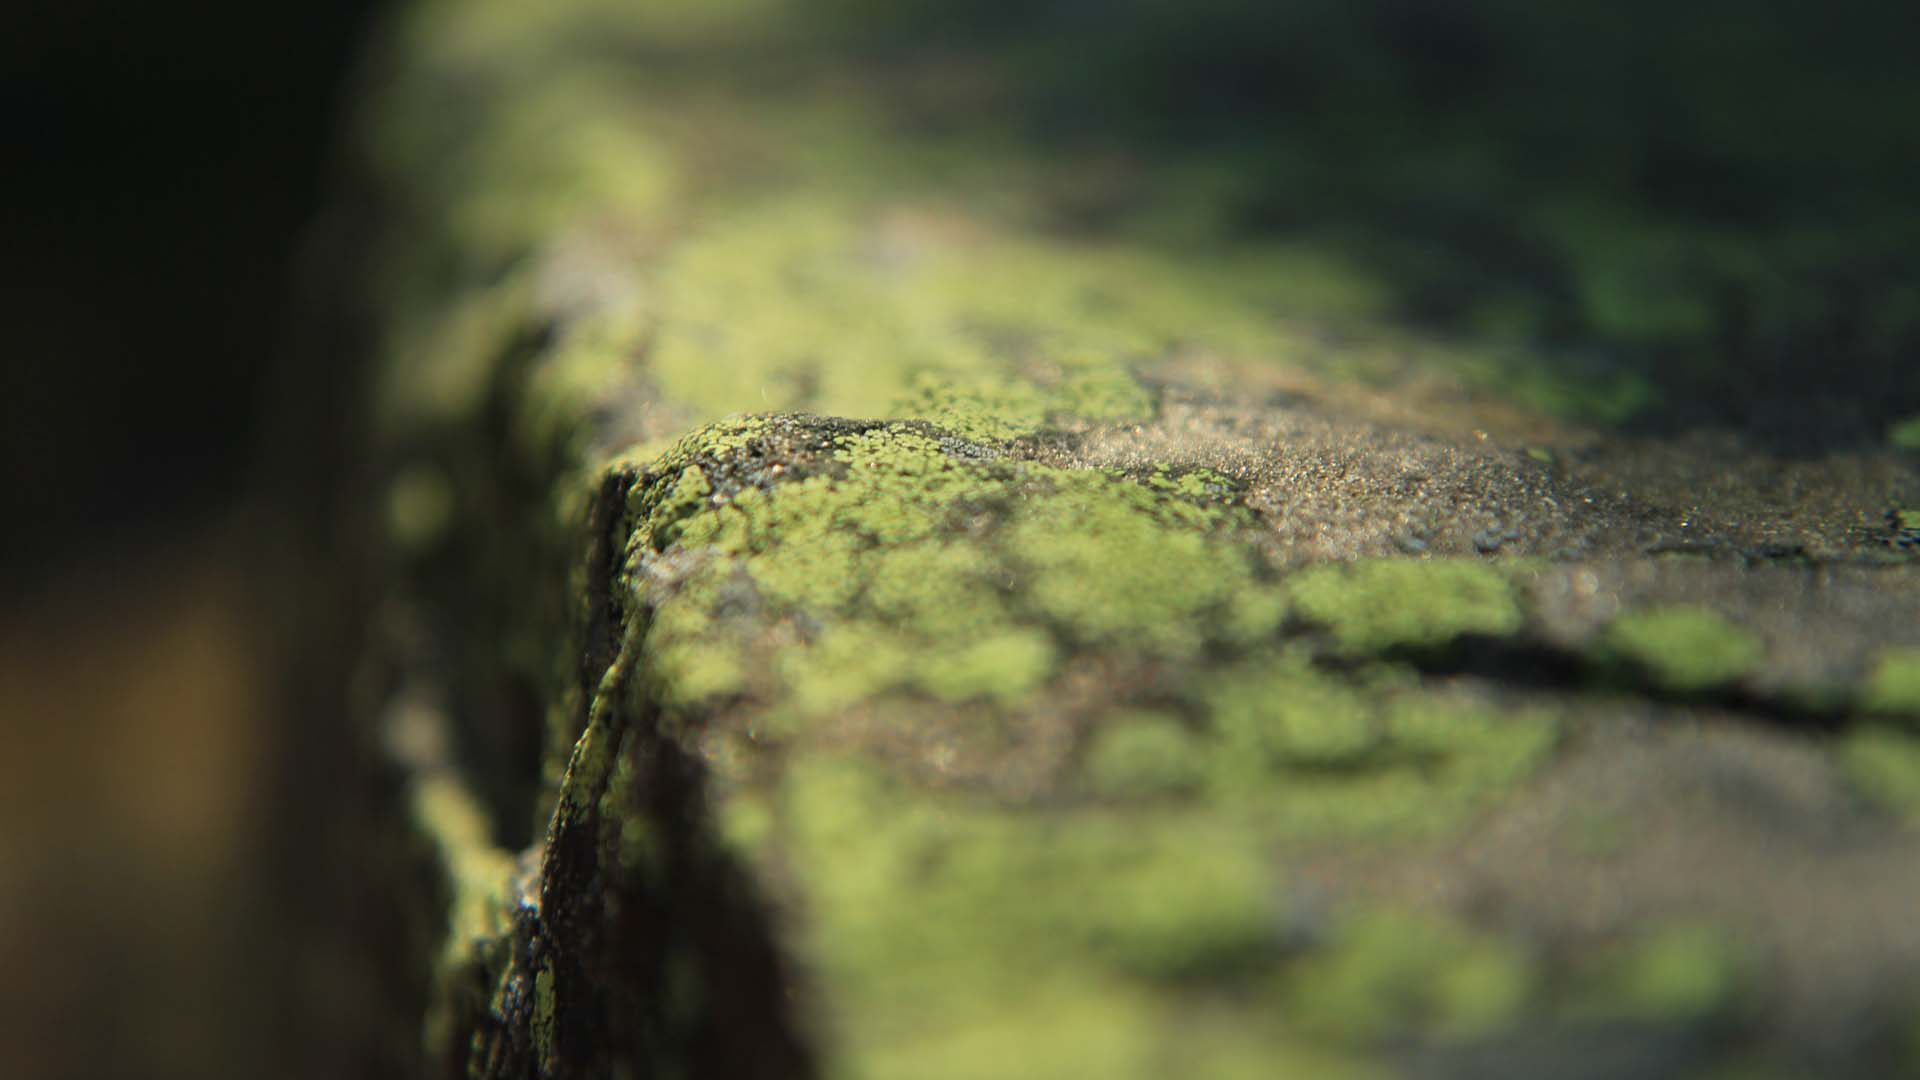 Using depth of field too sparingly slither shallow depth of field lichen on rock